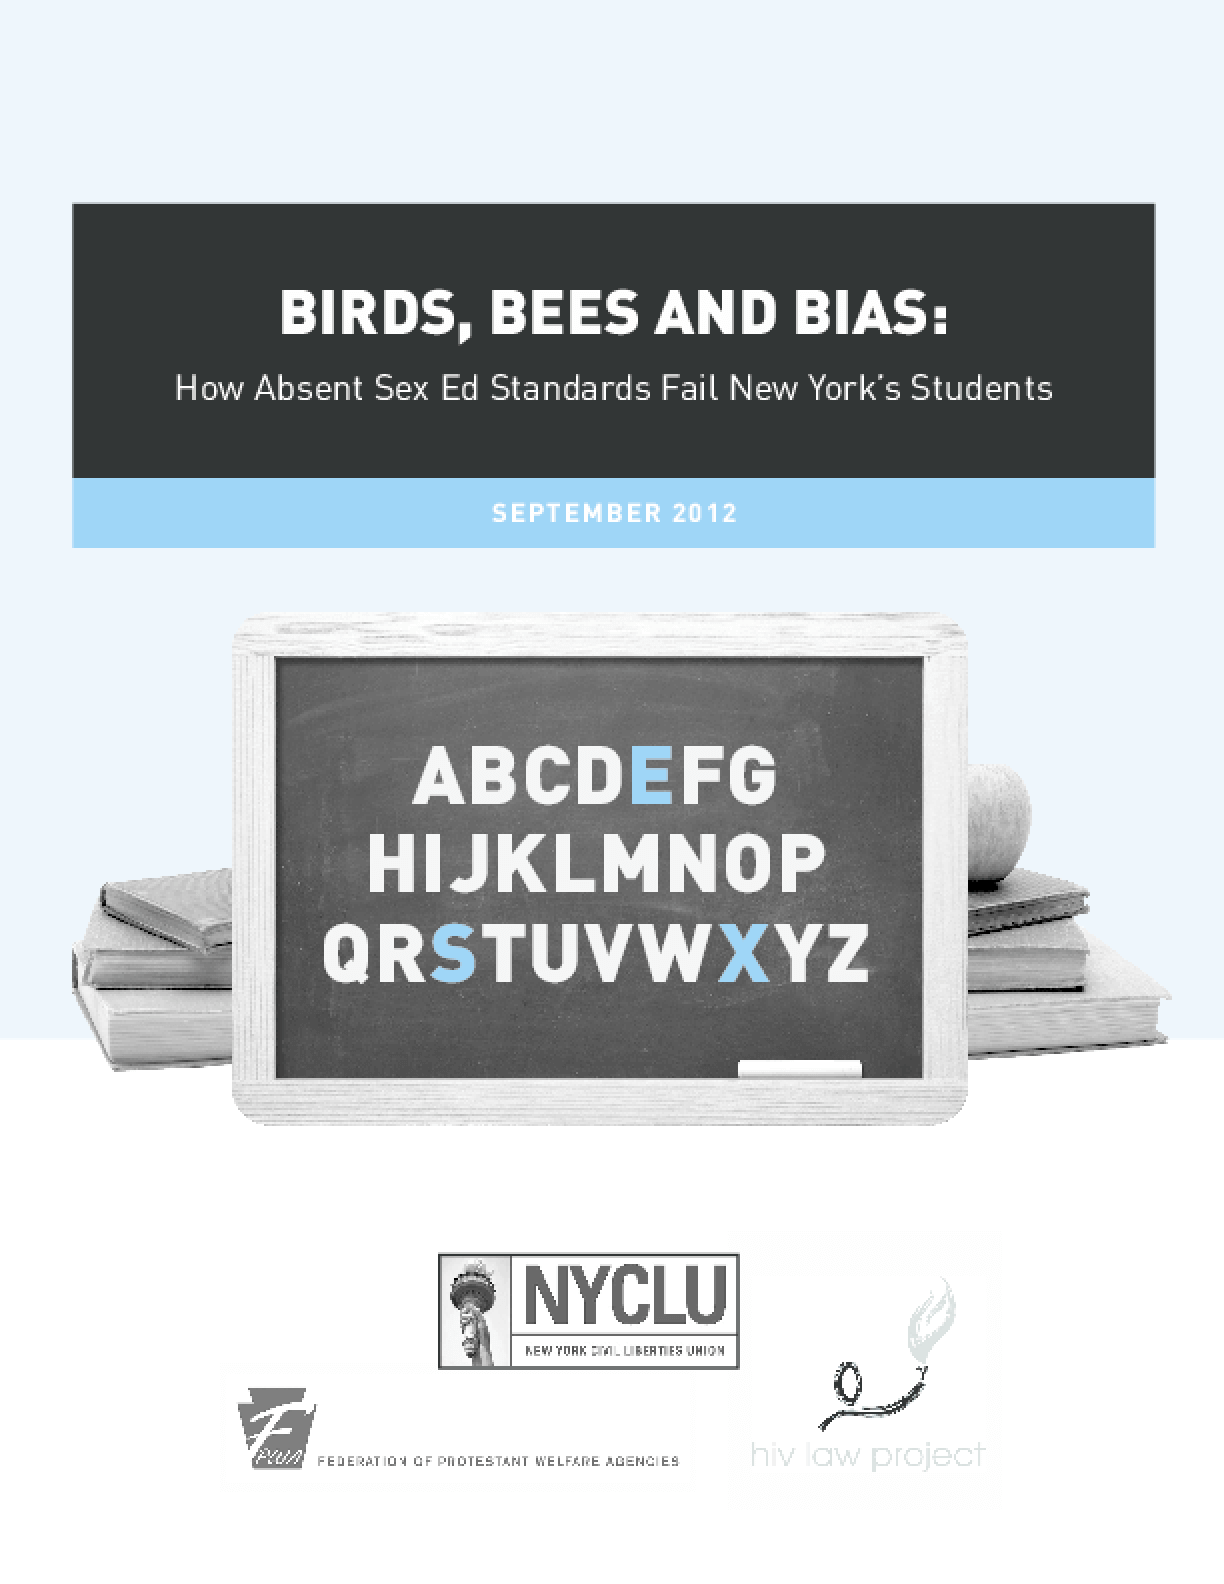 Birds, Bees and Bias: How Absent Sex Ed Standards Fail New York's Students